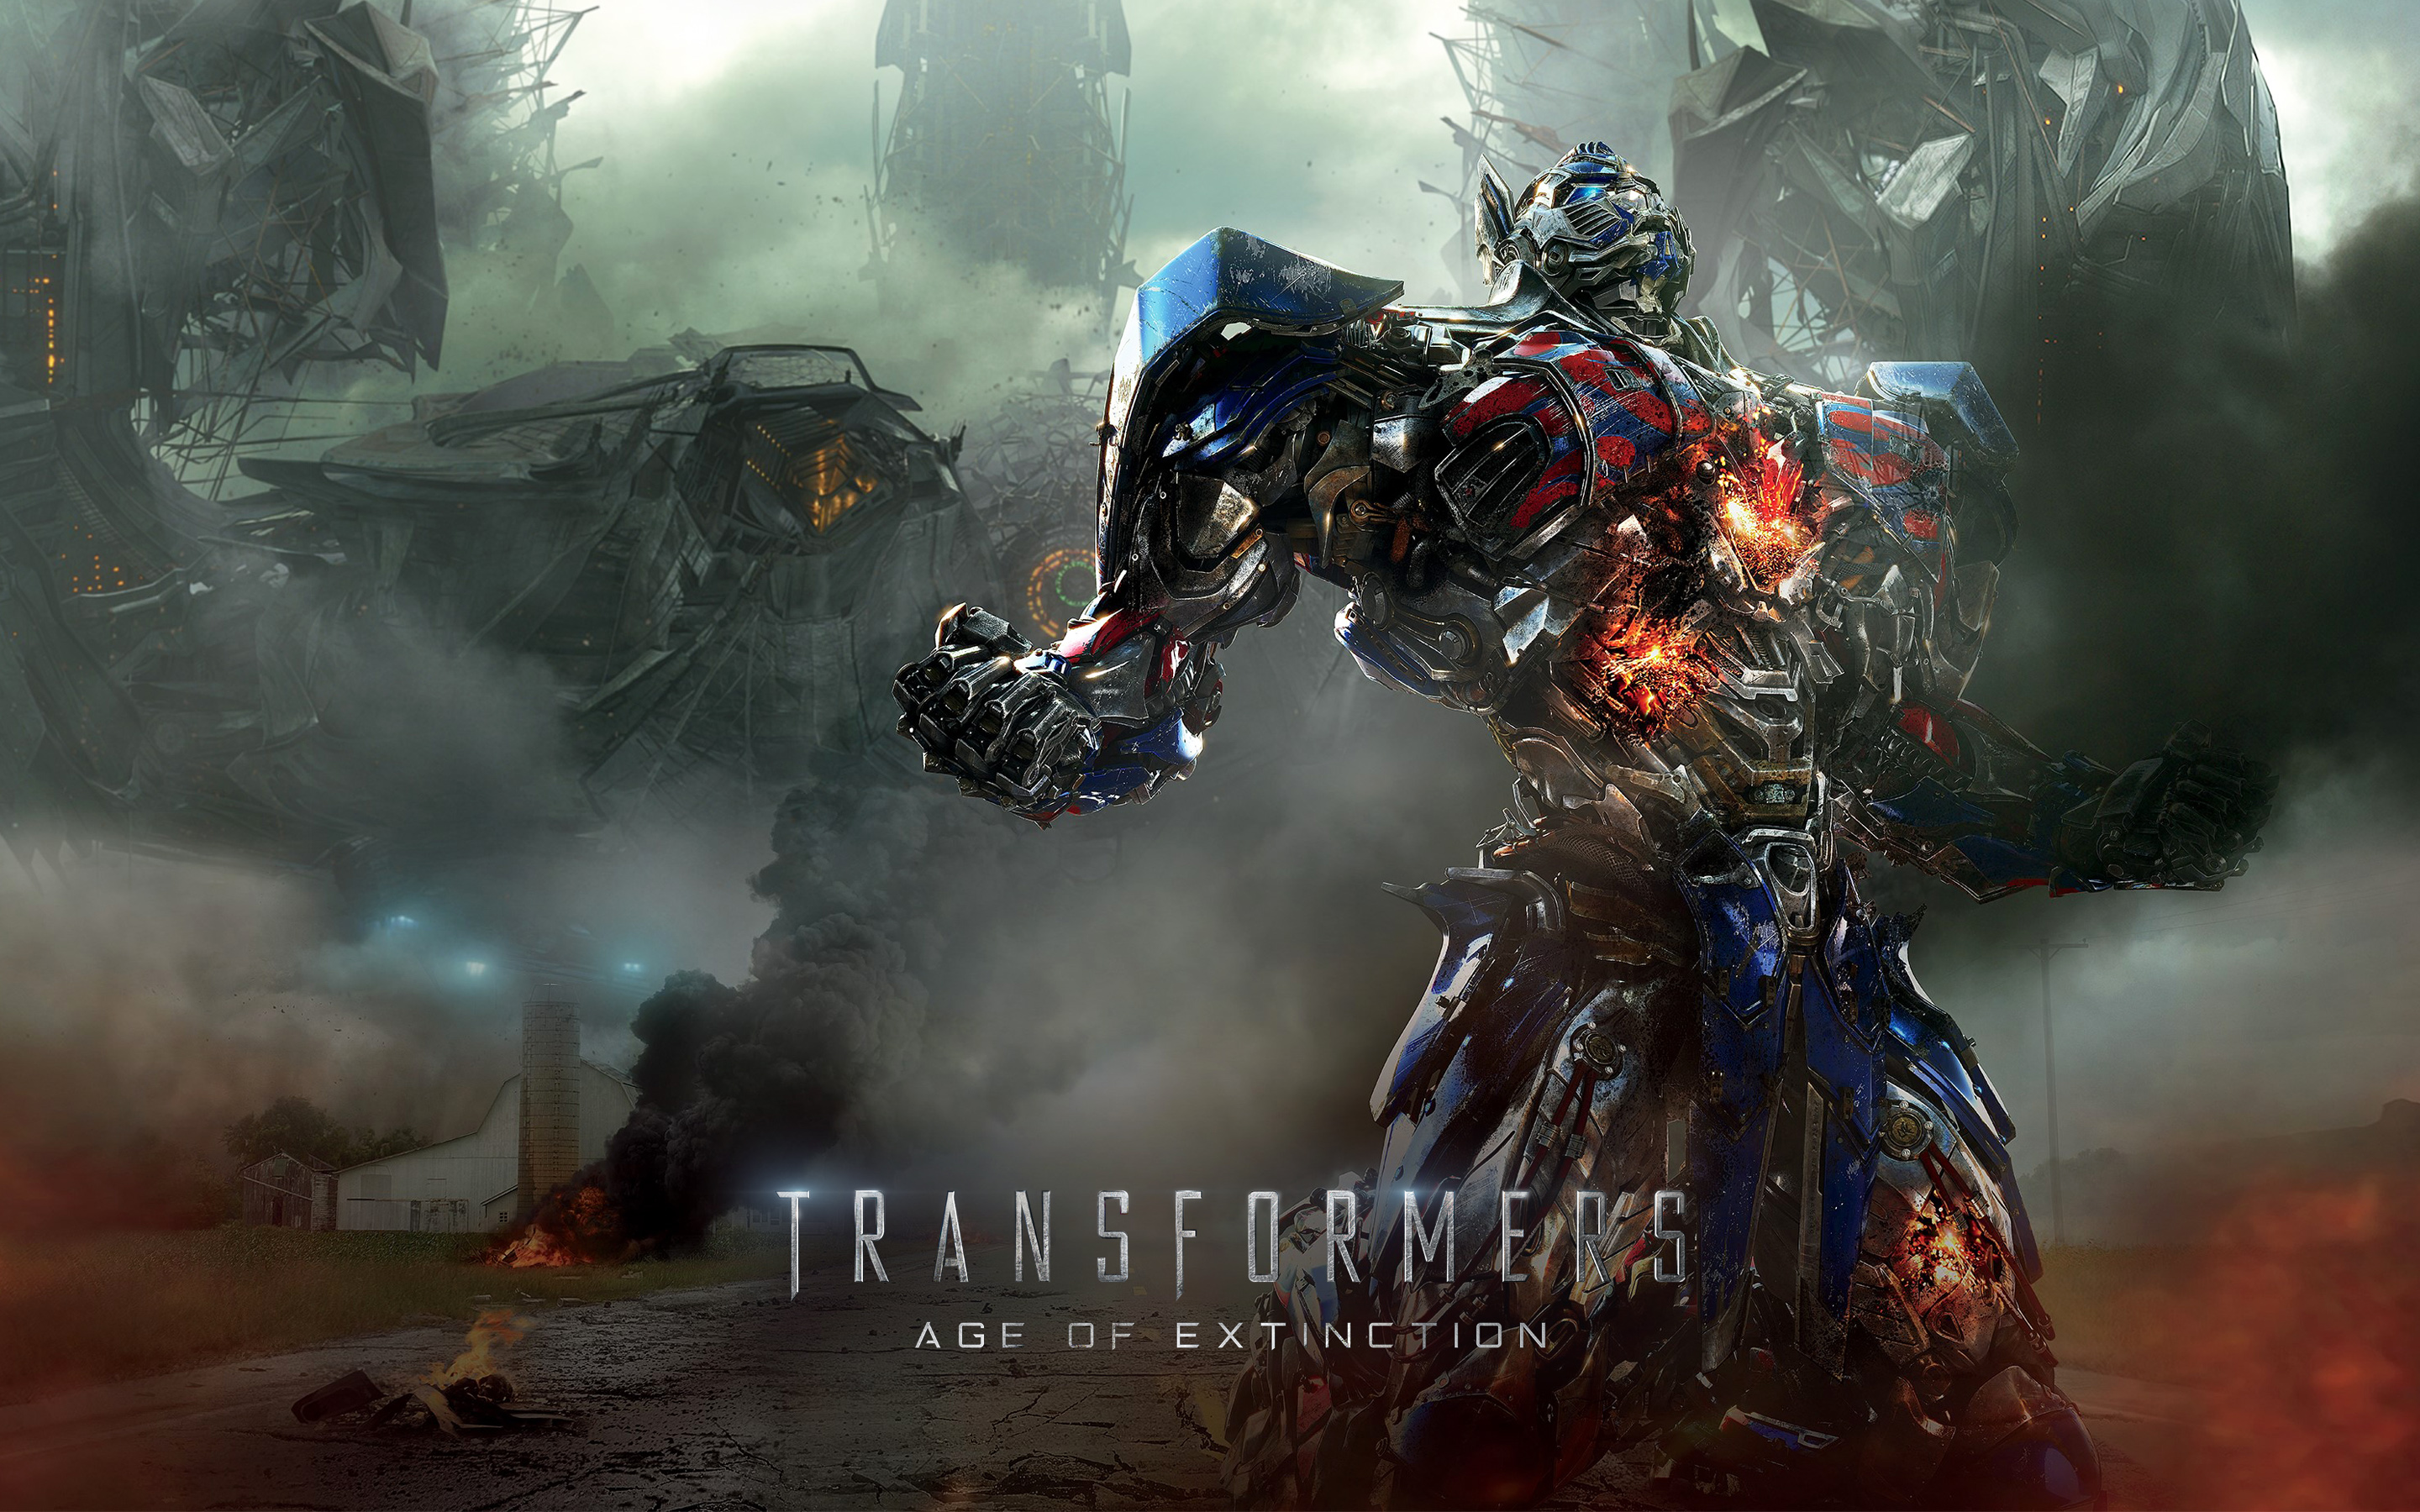 Transformers Age Of Extinction Full Movie In Hindi: Transformers 4 Age Of Extinction, HD Movies, 4k Wallpapers